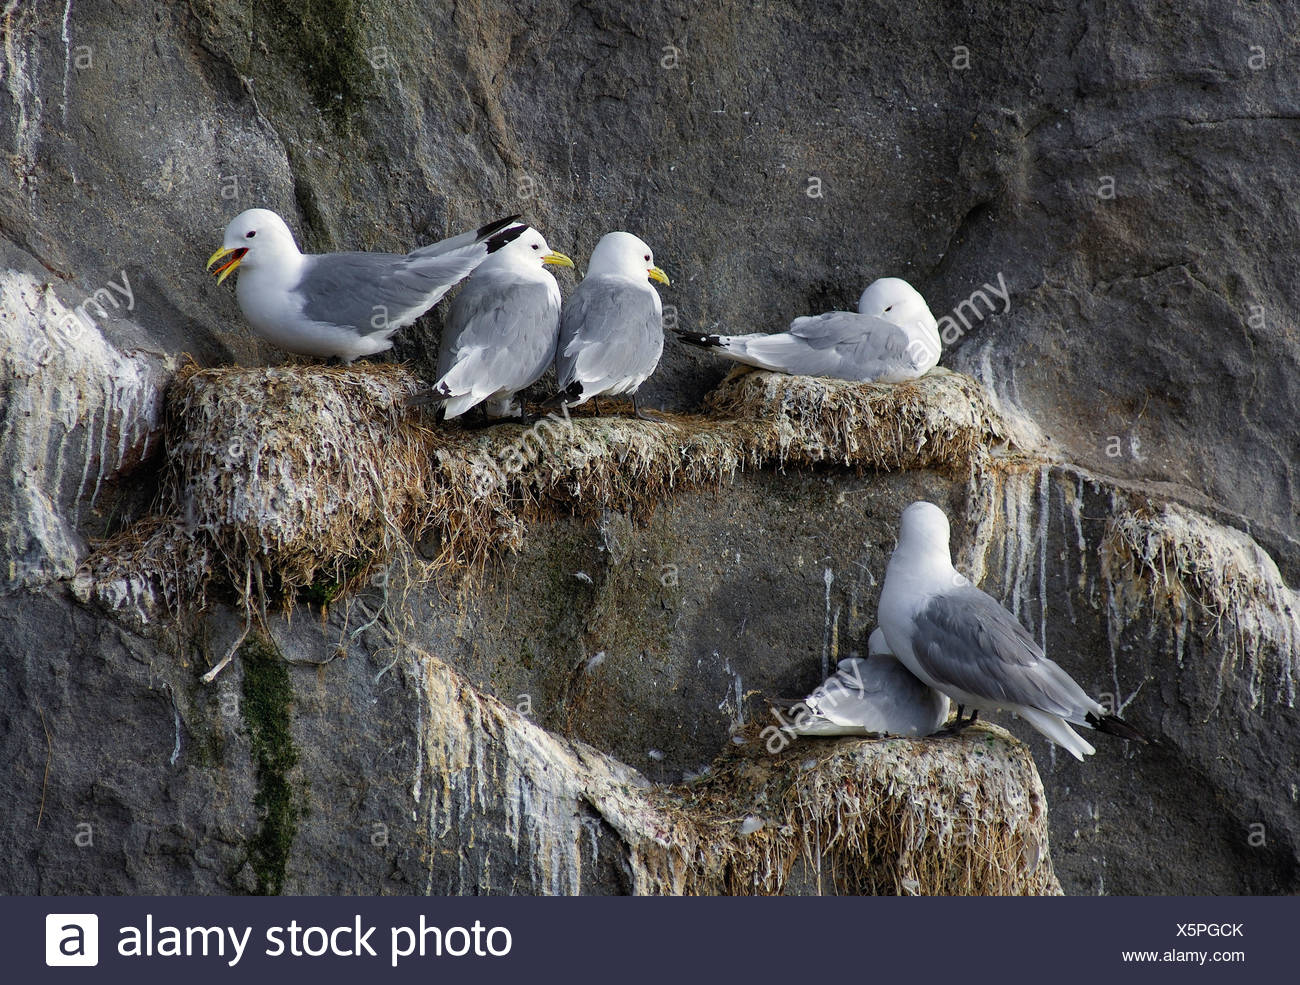 Gulls (Laridae) are sitting on a rock, Norway, Scandinavia - Stock Image